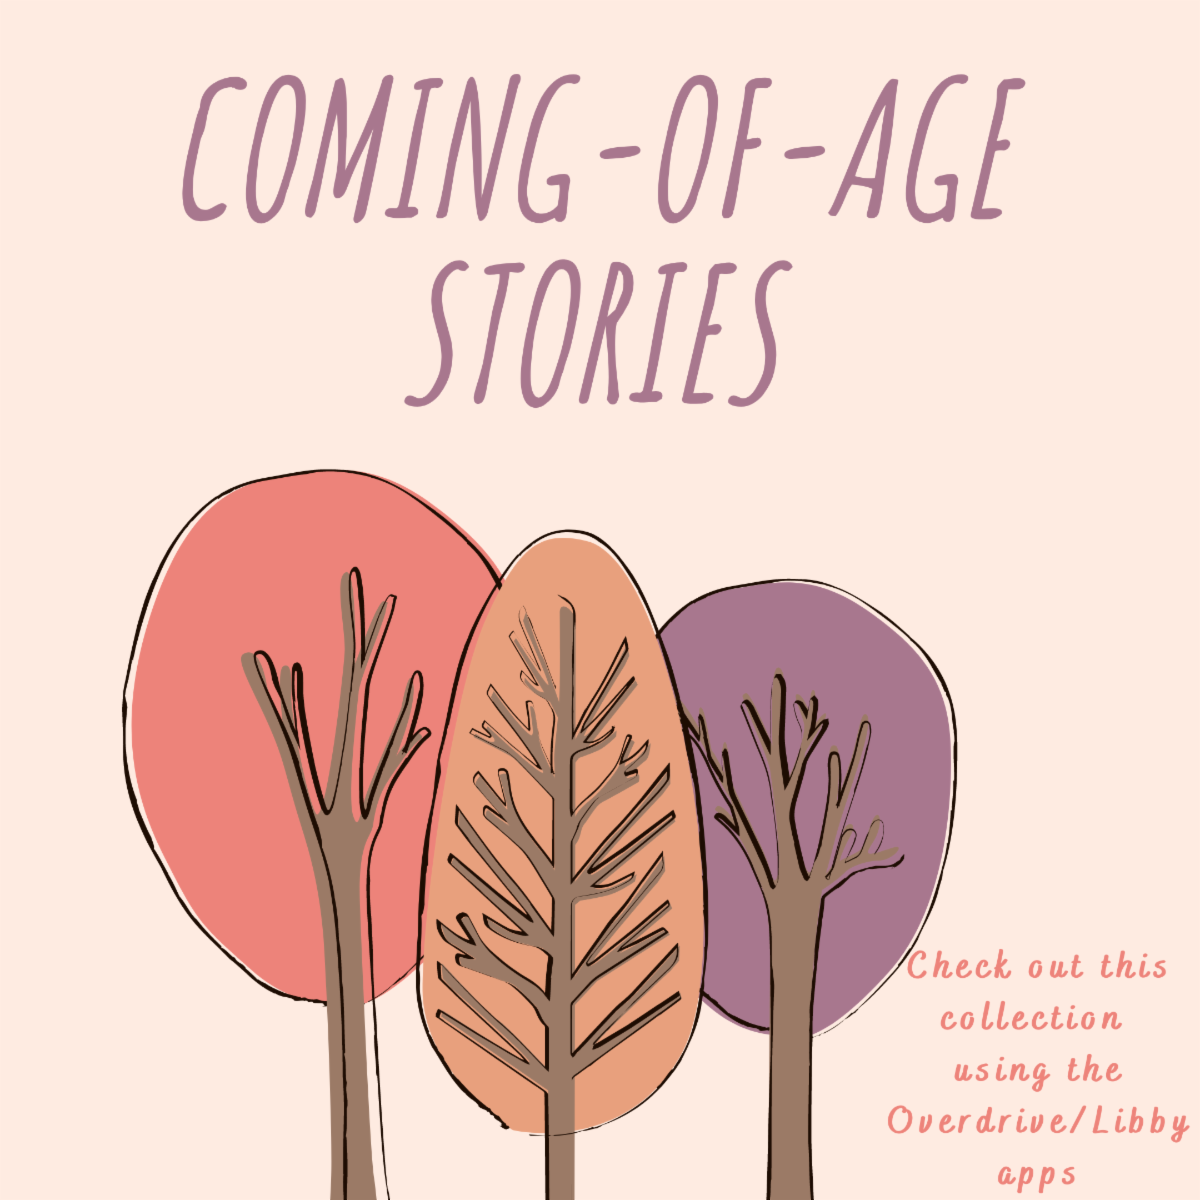 Coming of Age Stories